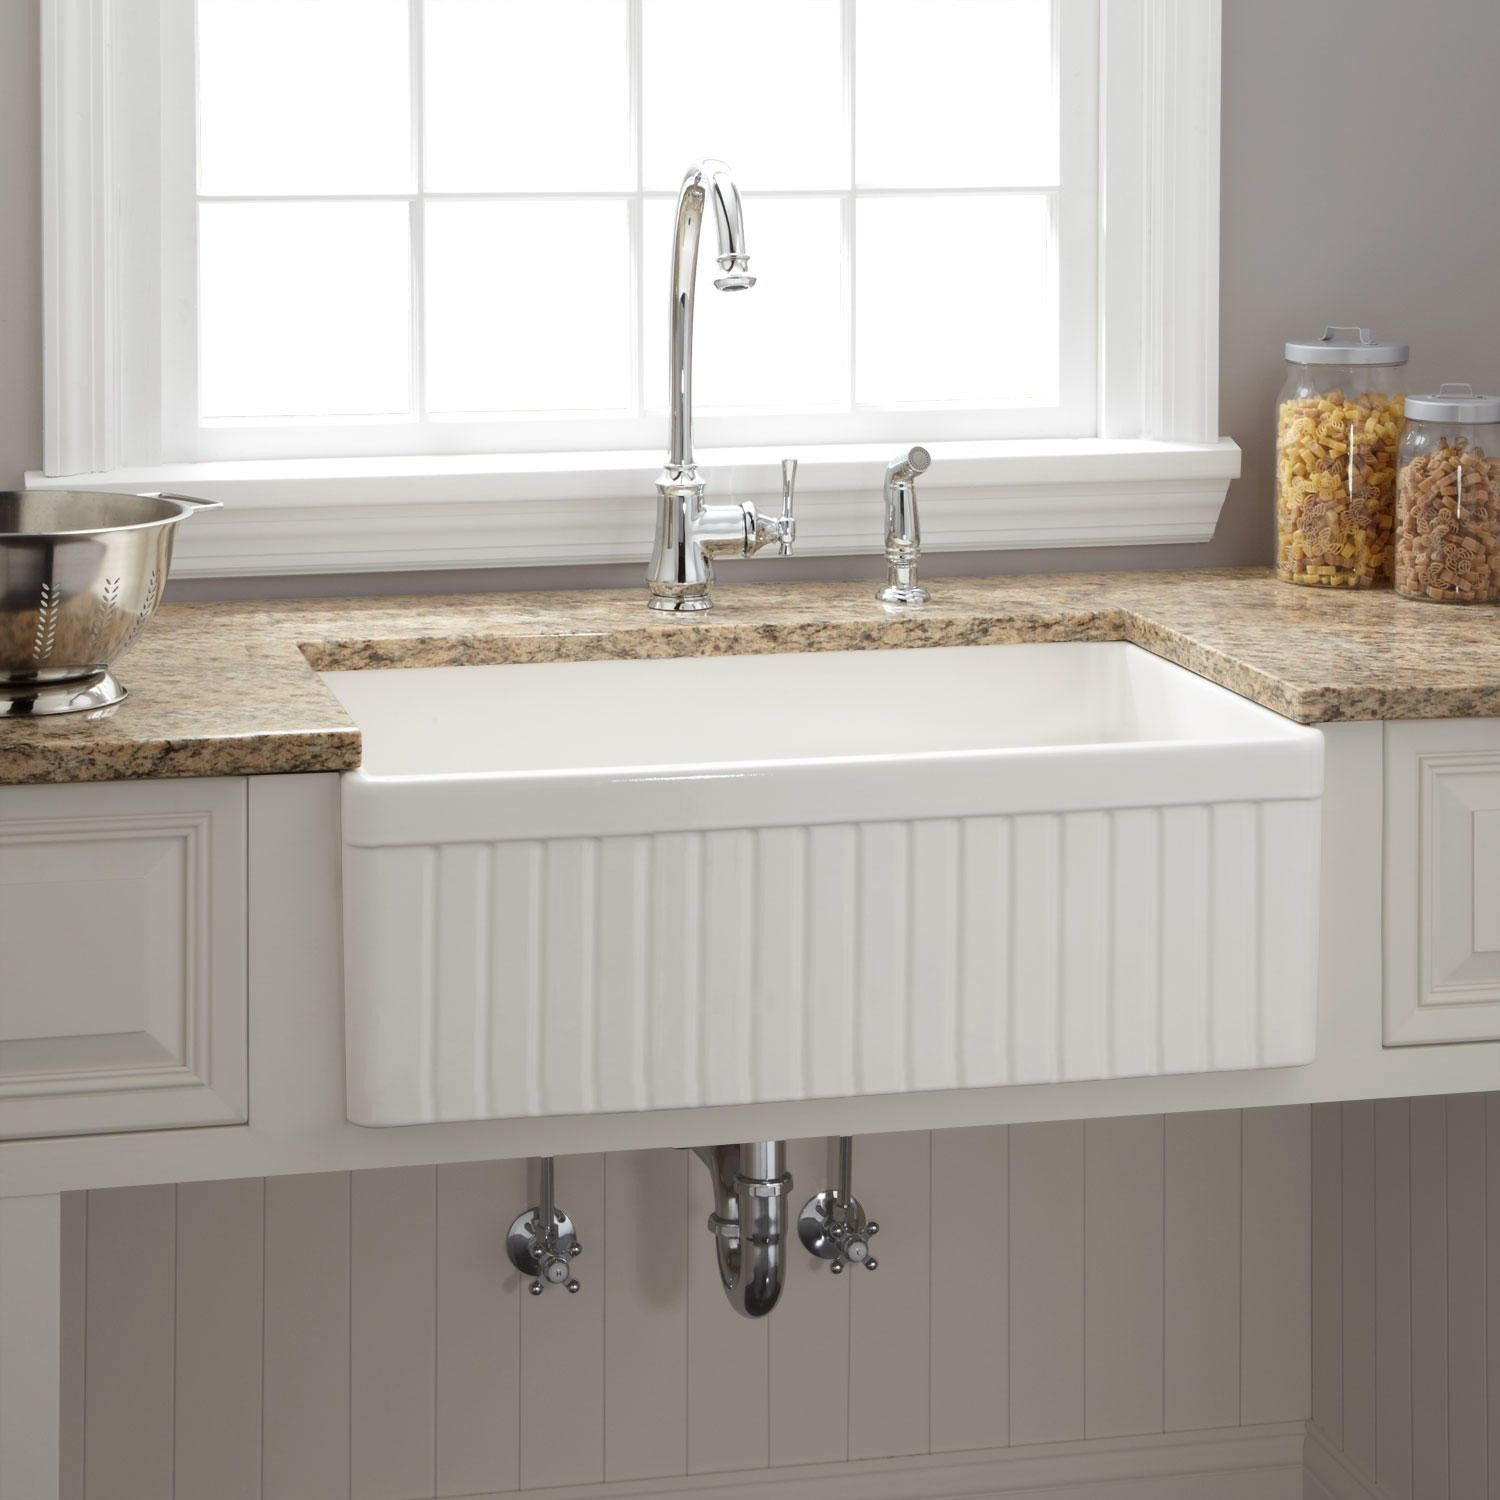 Lovely Farmhouse Kitchen Sinks South Africa The Incredible In Addition To Attractive Farmhouse Kit White Farmhouse Sink Farmhouse Sink Kitchen Farmhouse Sink